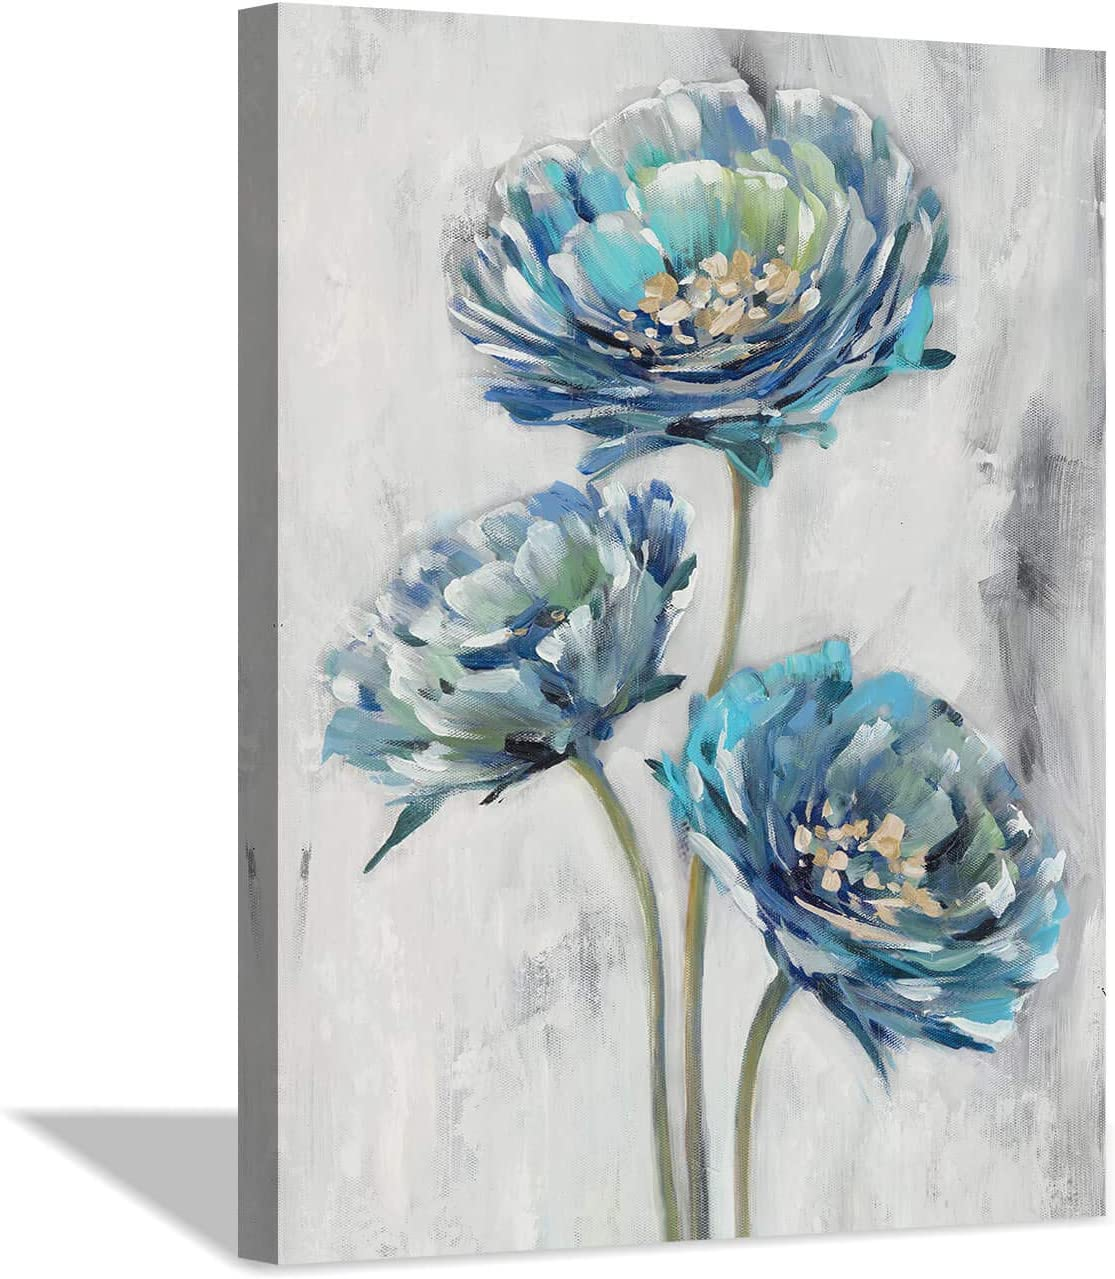 "Abstract Floral Canvas Wall Art: Blossom Blue Lotus Flower Artwork Painting Print for Bathroom ( 12"" x 16"" x 1 Panel )"